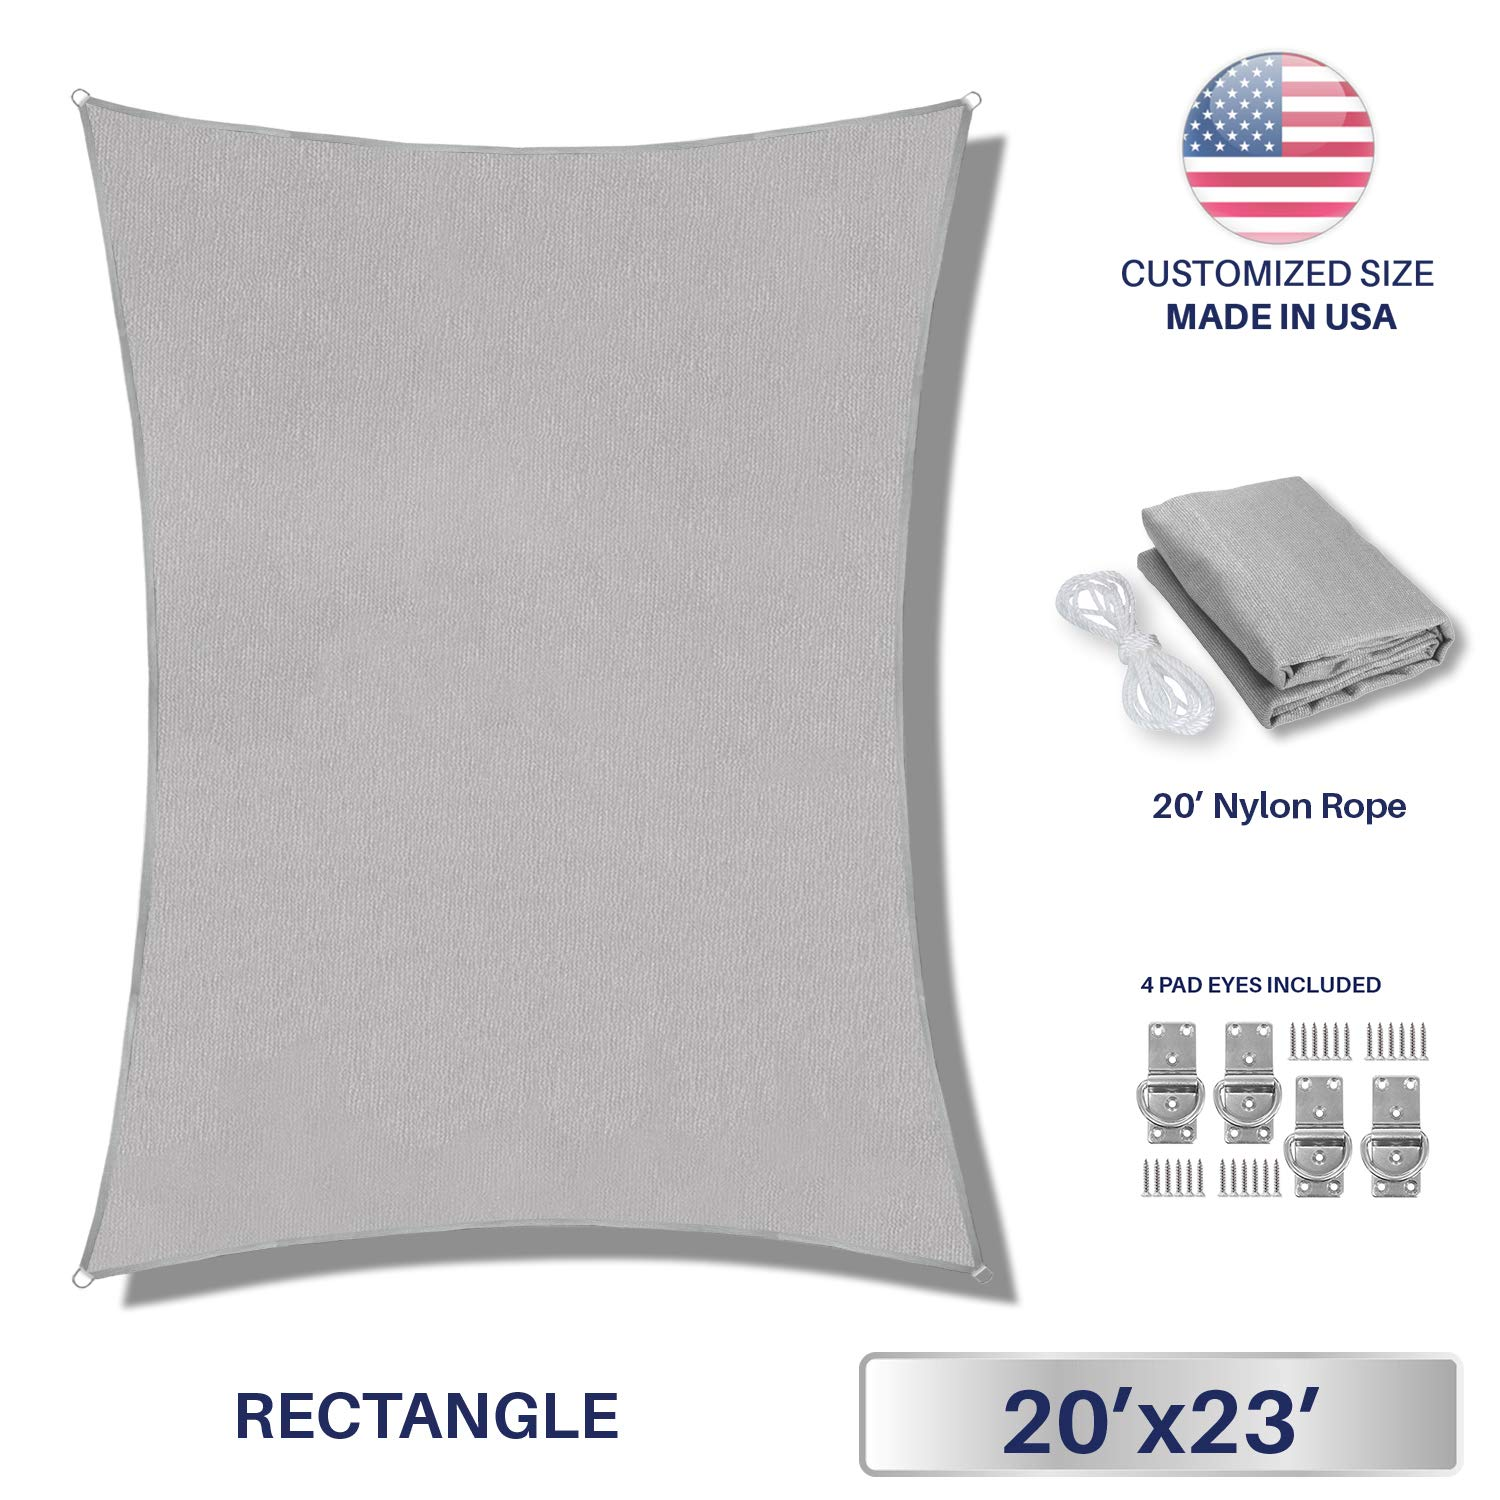 Windscreen4less Sun Shade Sail Light Grey 20' x 23' Rectangle Patio Permeable Fabric UV Block Perfect for Outdoor Patio Backyard - Customize (4 Pad Eyes Included)